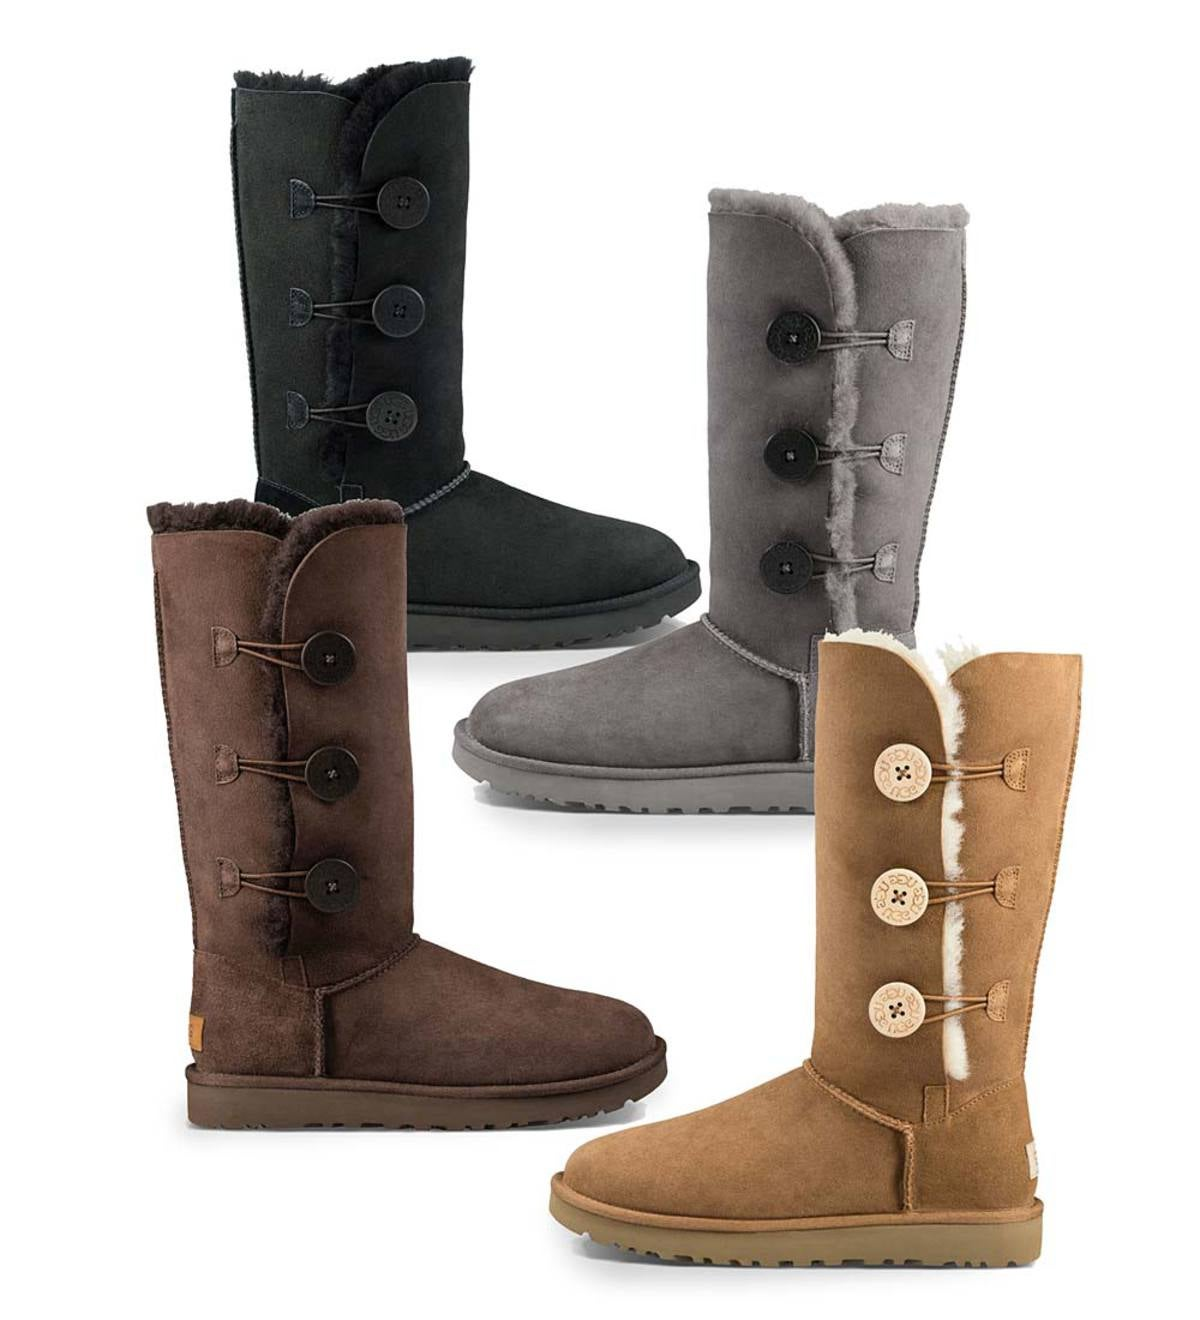 UGG Women's Bailey Button Triplet II Boots